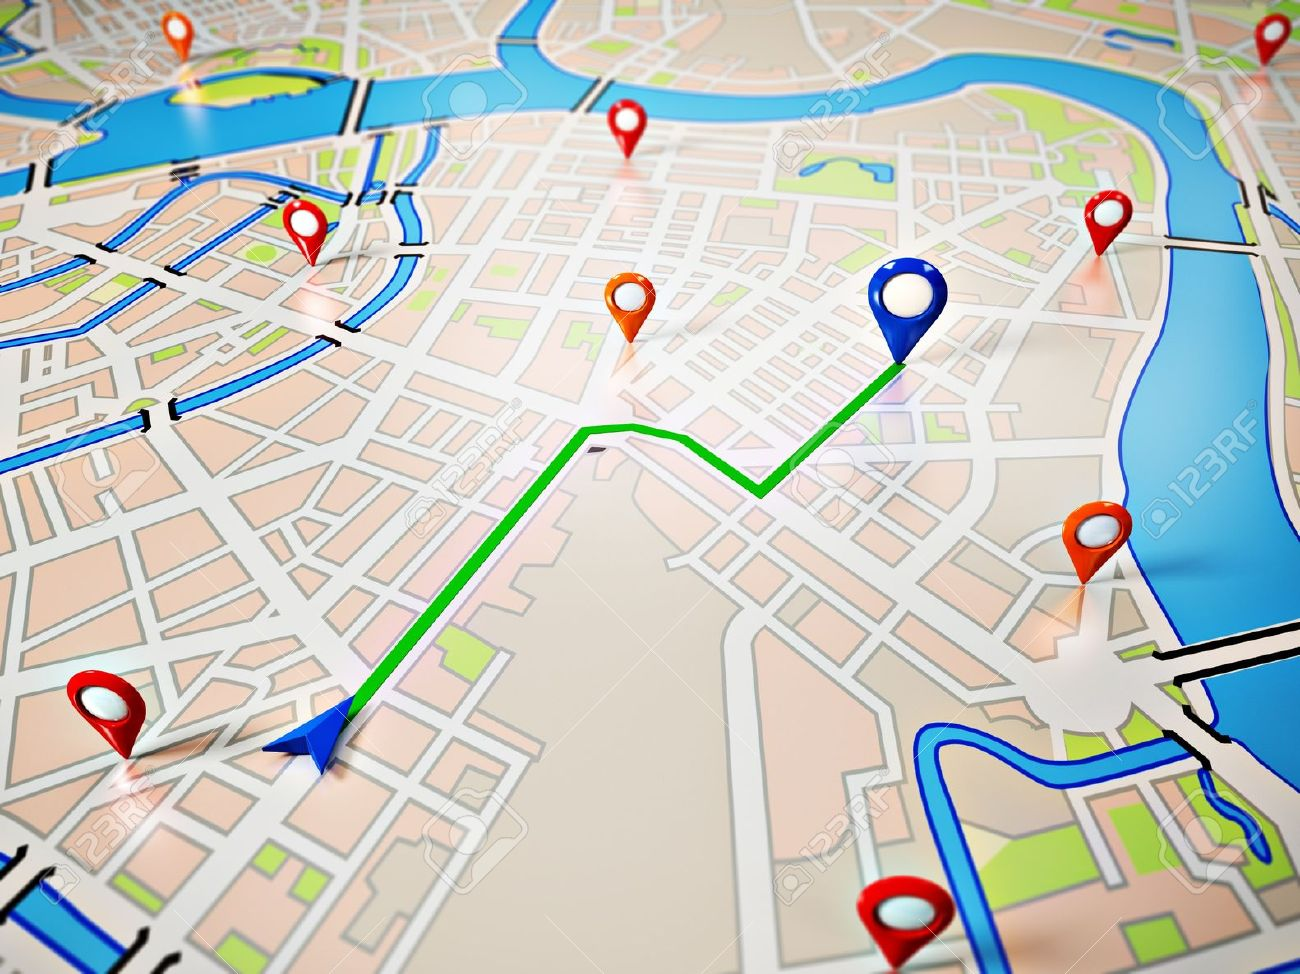 #2 Real Time Location Tracking - Glympse